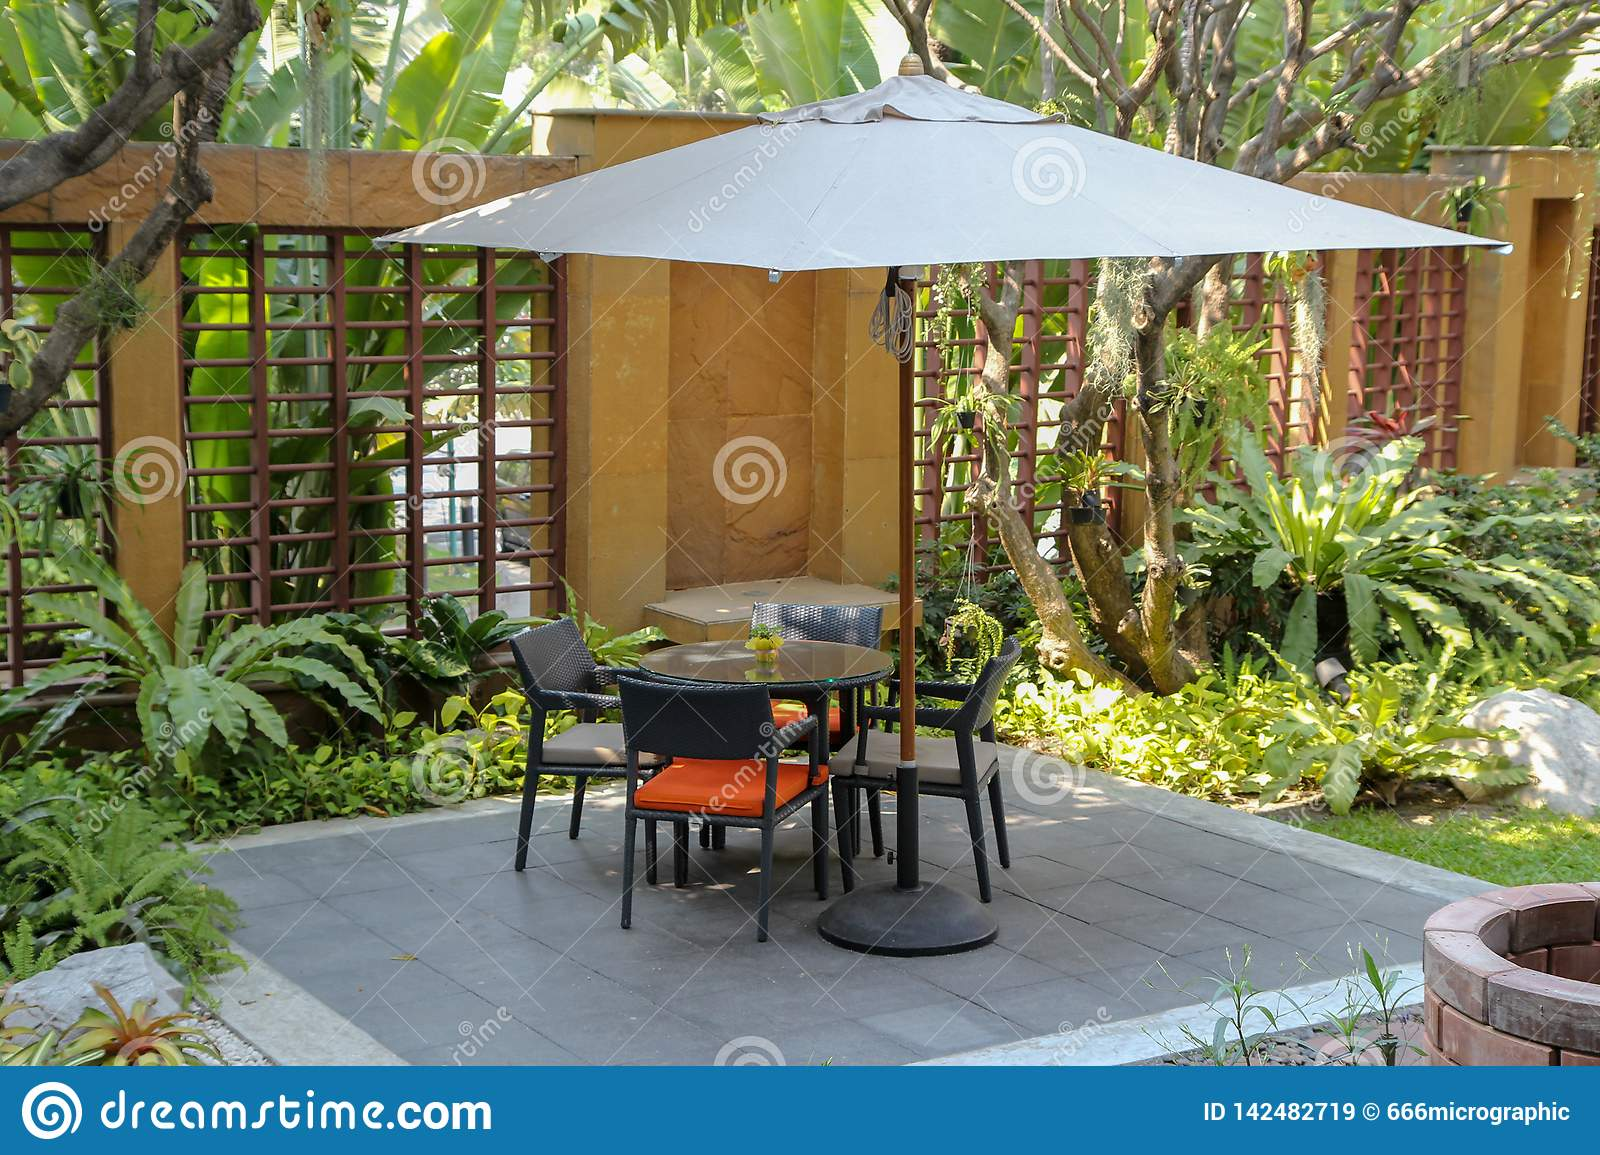 Rattan Garden Table And Chairs Dining Garden Chair Outdoor In Garden Furniture In Modern Patio Stock Image Image Of Grass Exterior 142482719